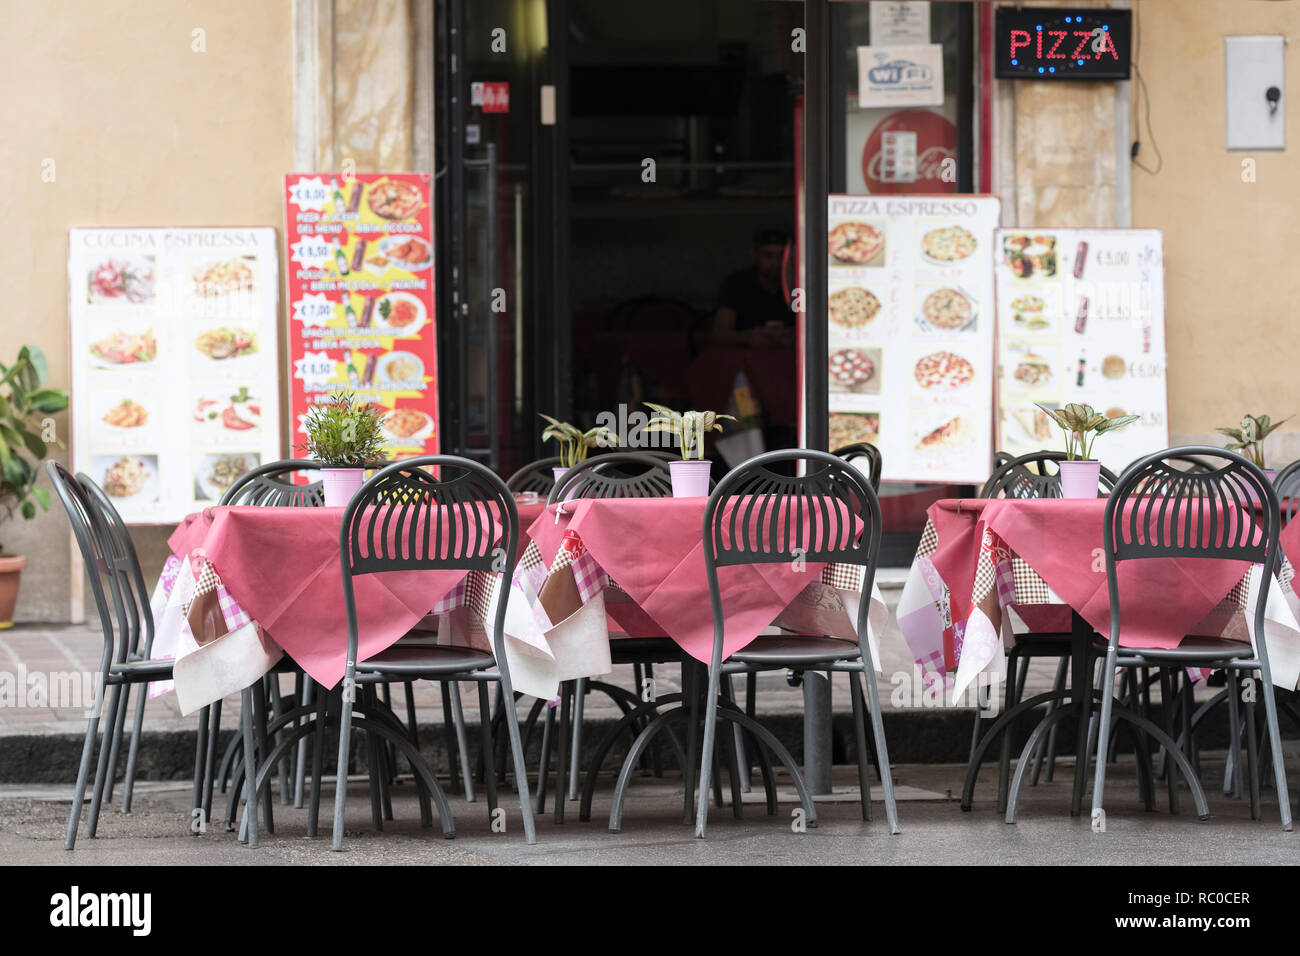 Pizza restaurant without any customers, Pisa, Tuscany, Italy, Europe. - Stock Image